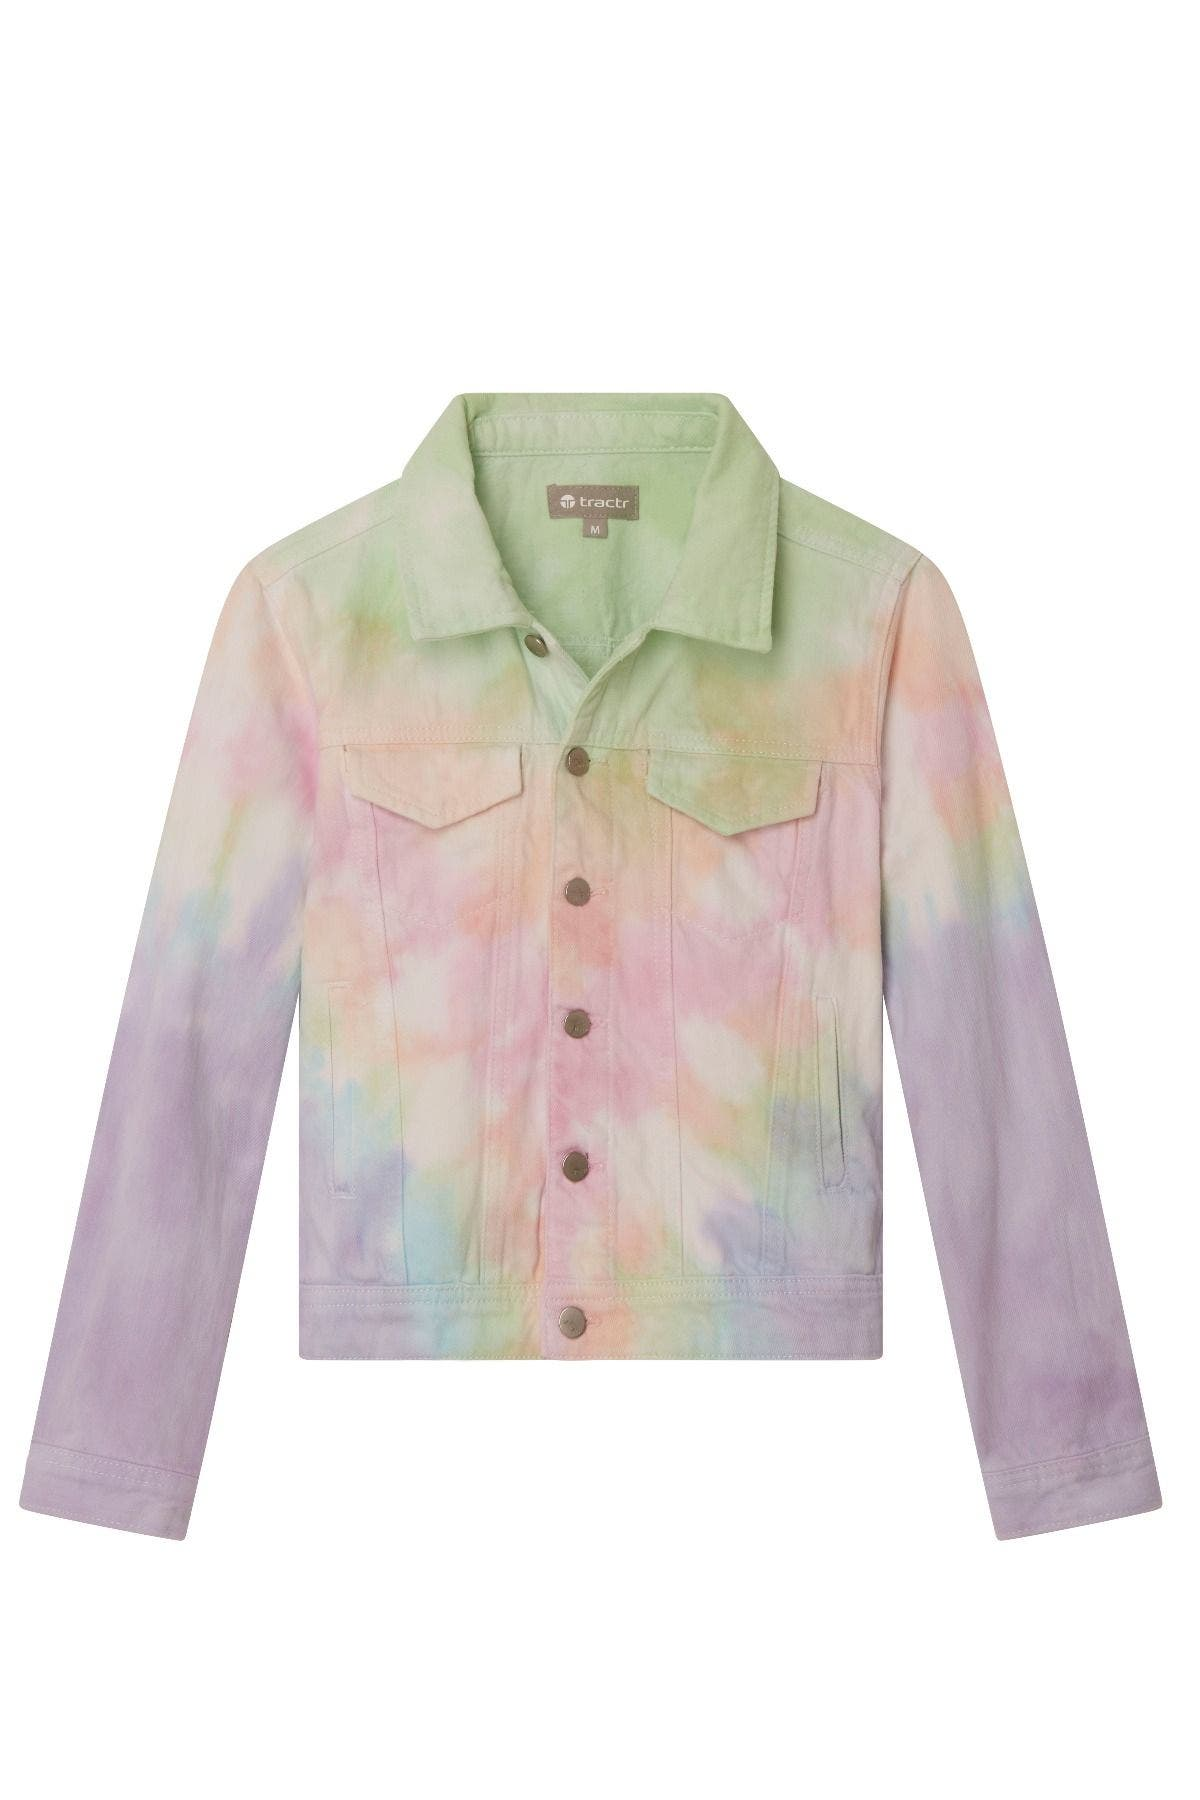 Tractr Girls Cropped Tie Dye Denim Jacket